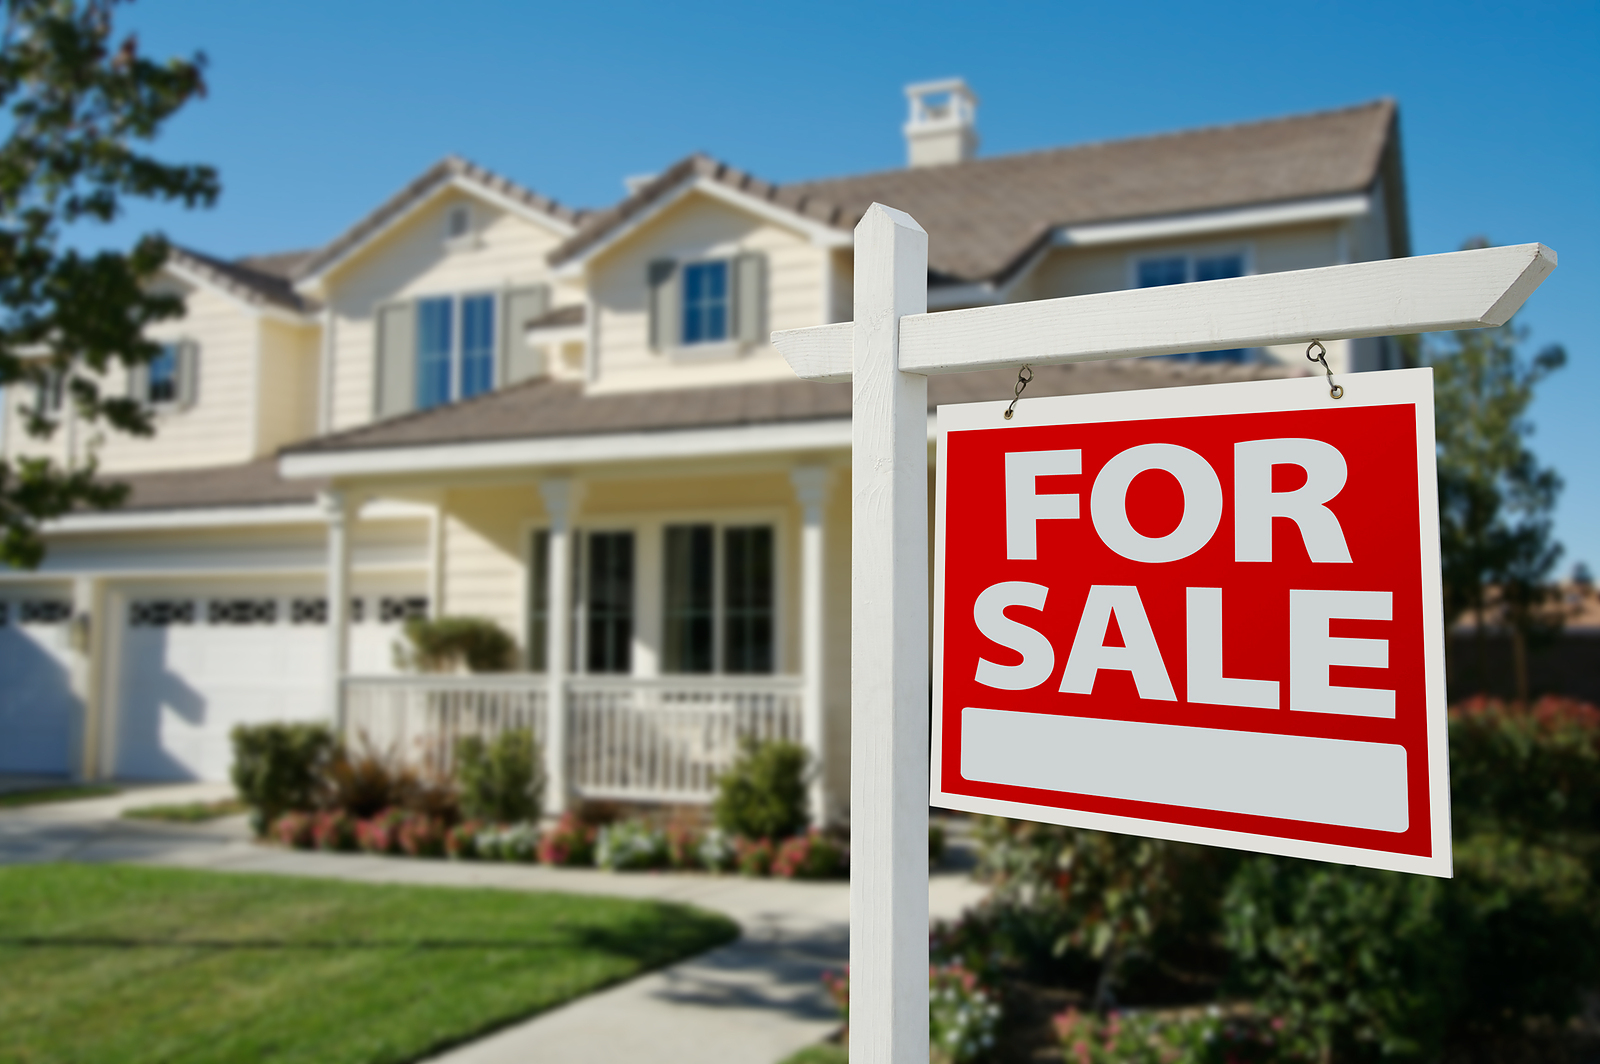 Cold and Hard Facts about home selling real estate